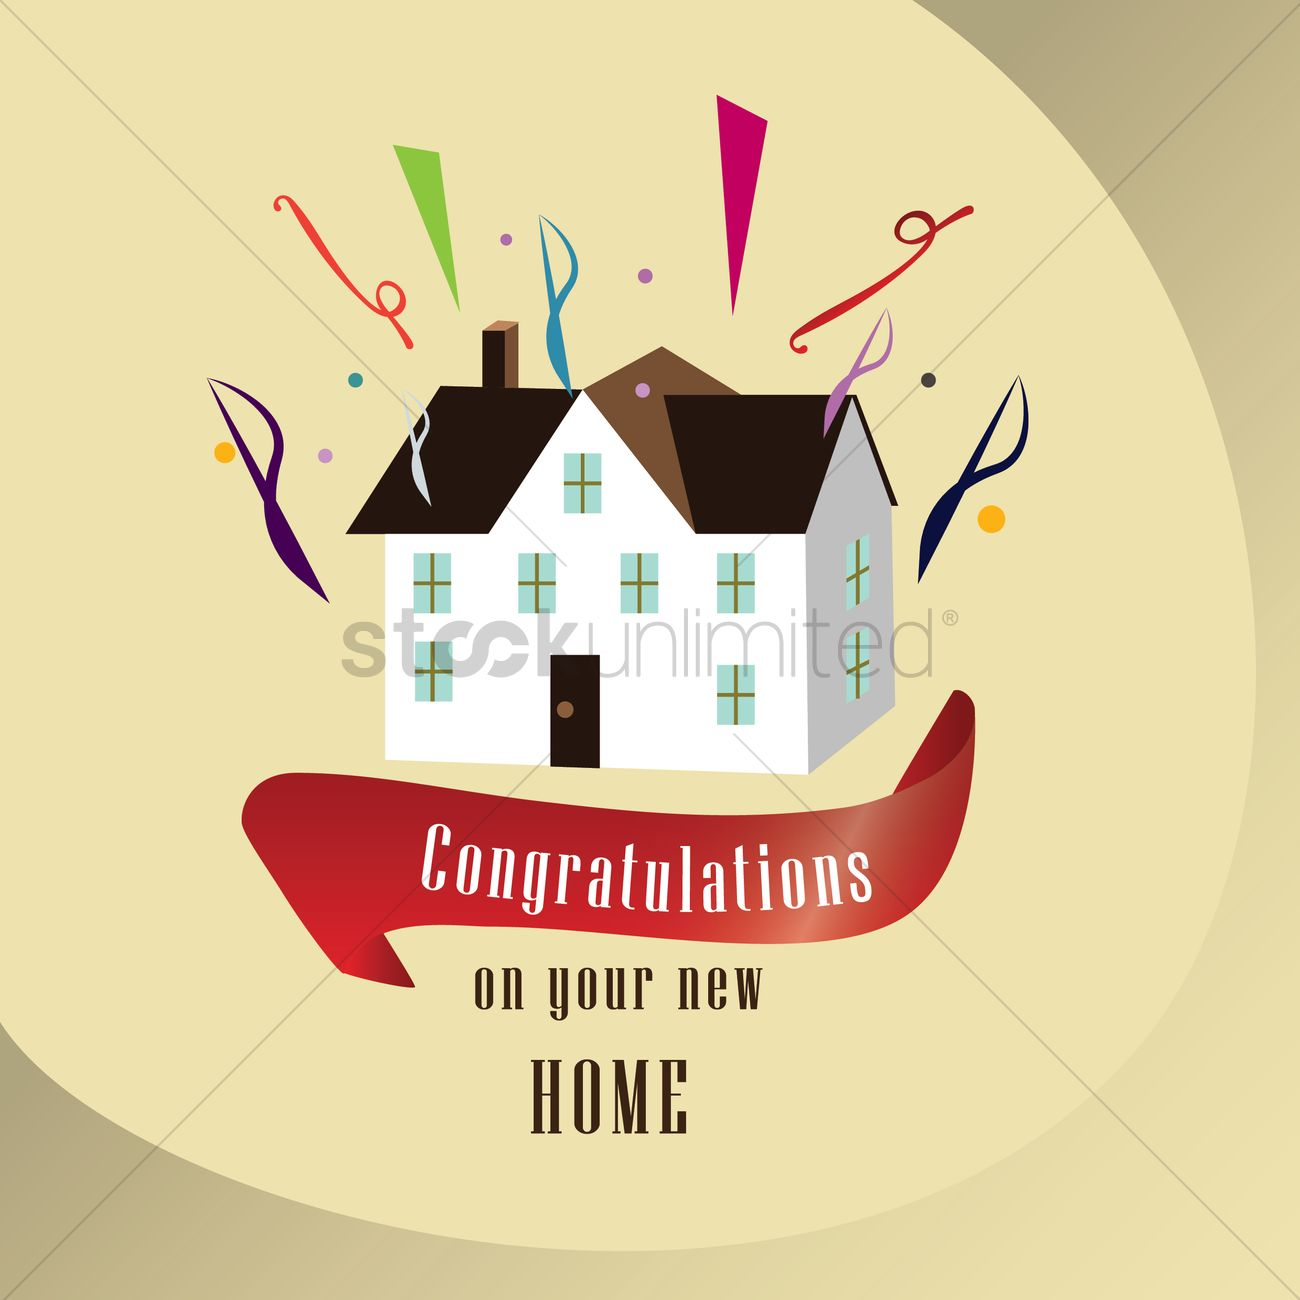 Congratulations on your new home vector image 1791404 for Designing your new home